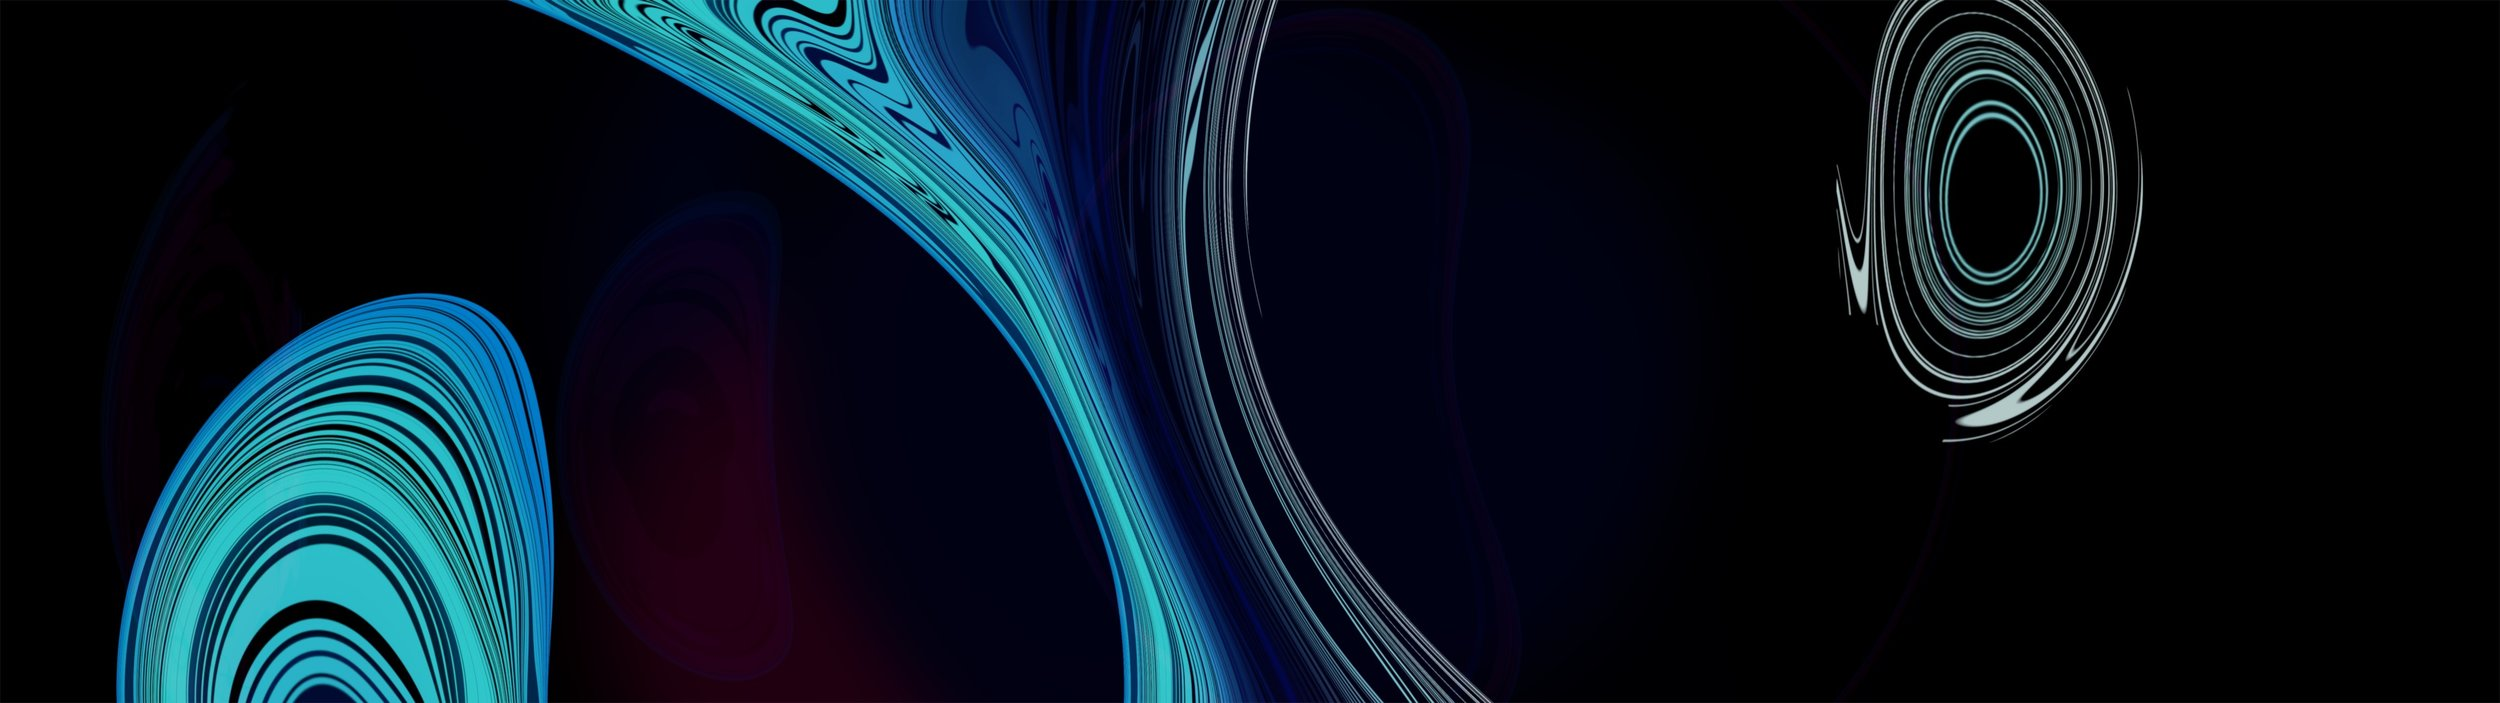 Color abstracts - Framegrab 08.jpg